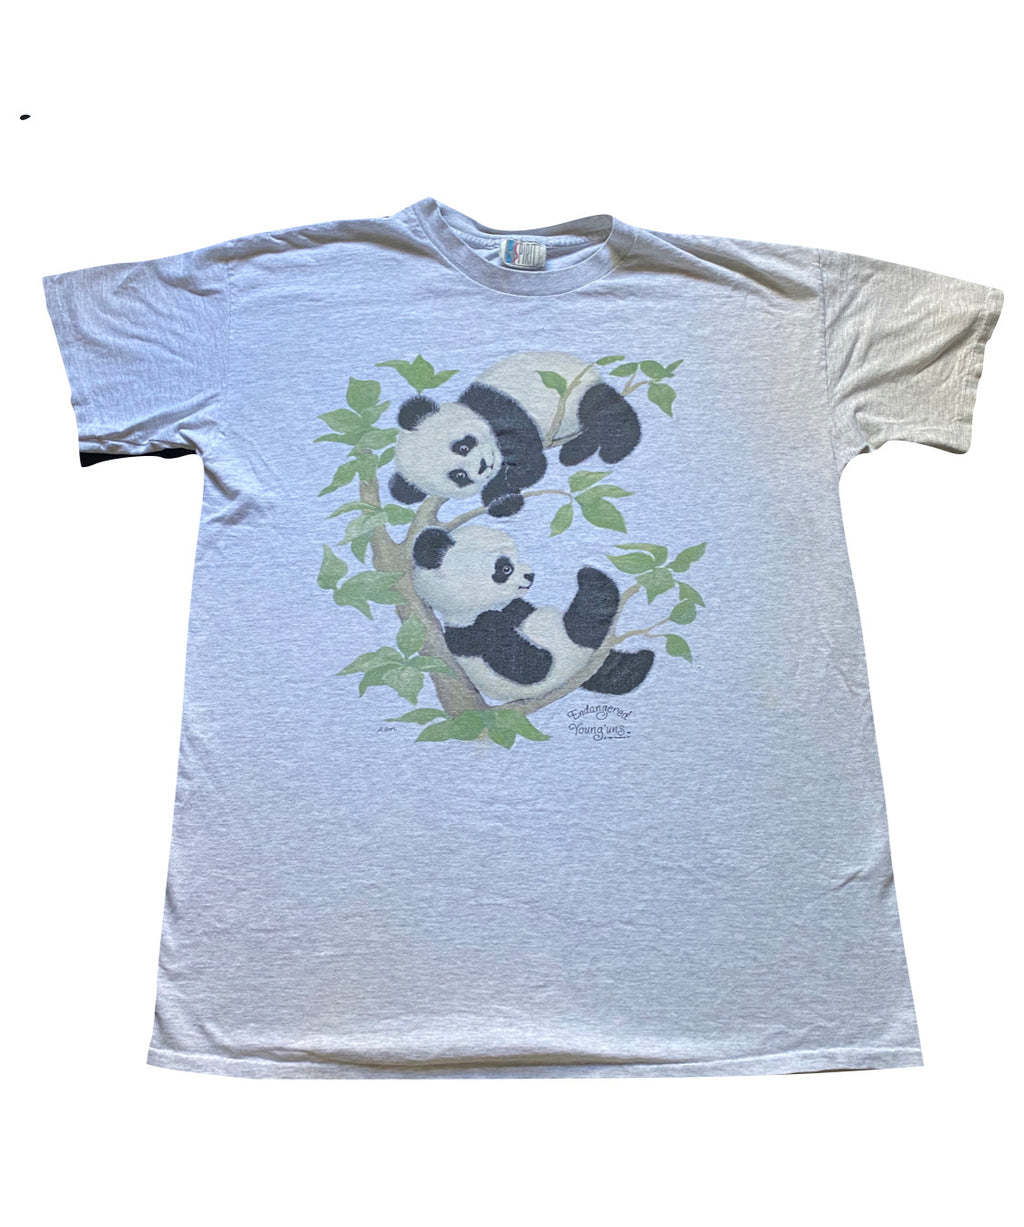 90s Endangered youngins panda tee. XL